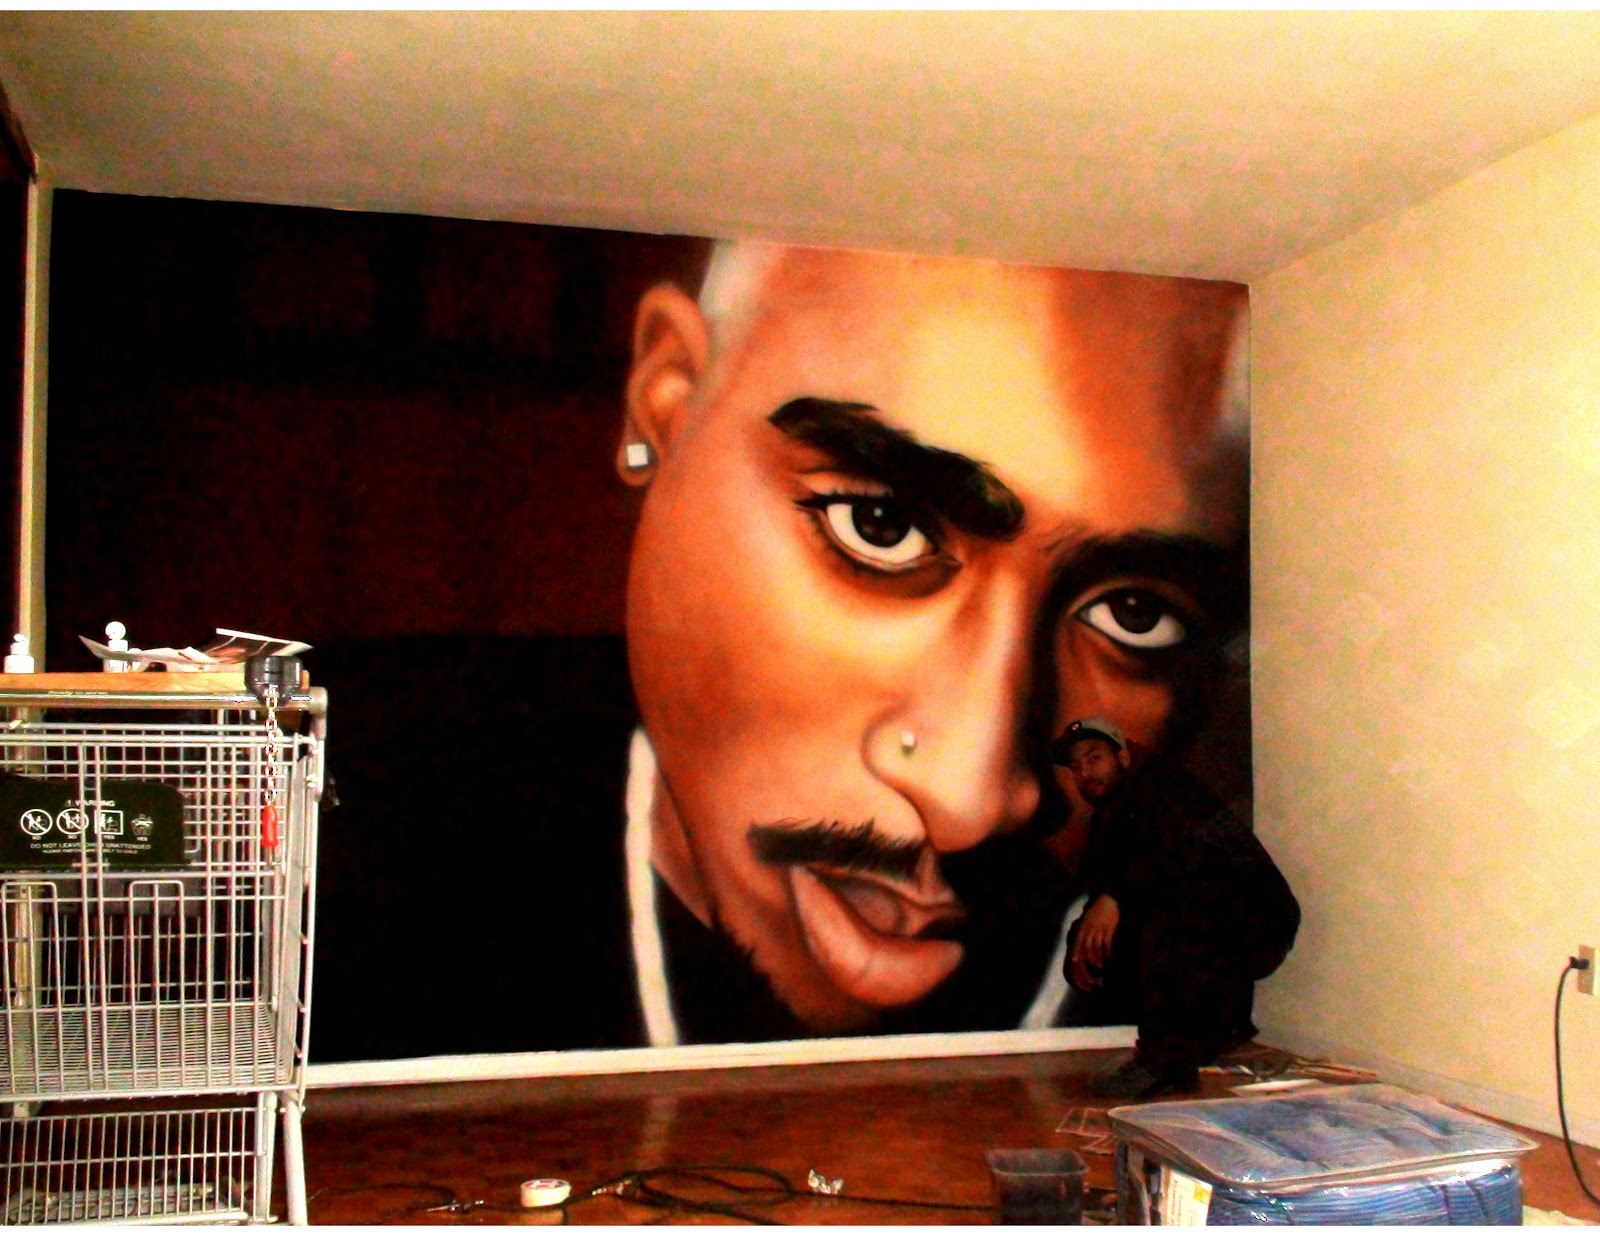 2talented ink may 2012 tupac 2pac rap hip hop poster wall mural print on paper